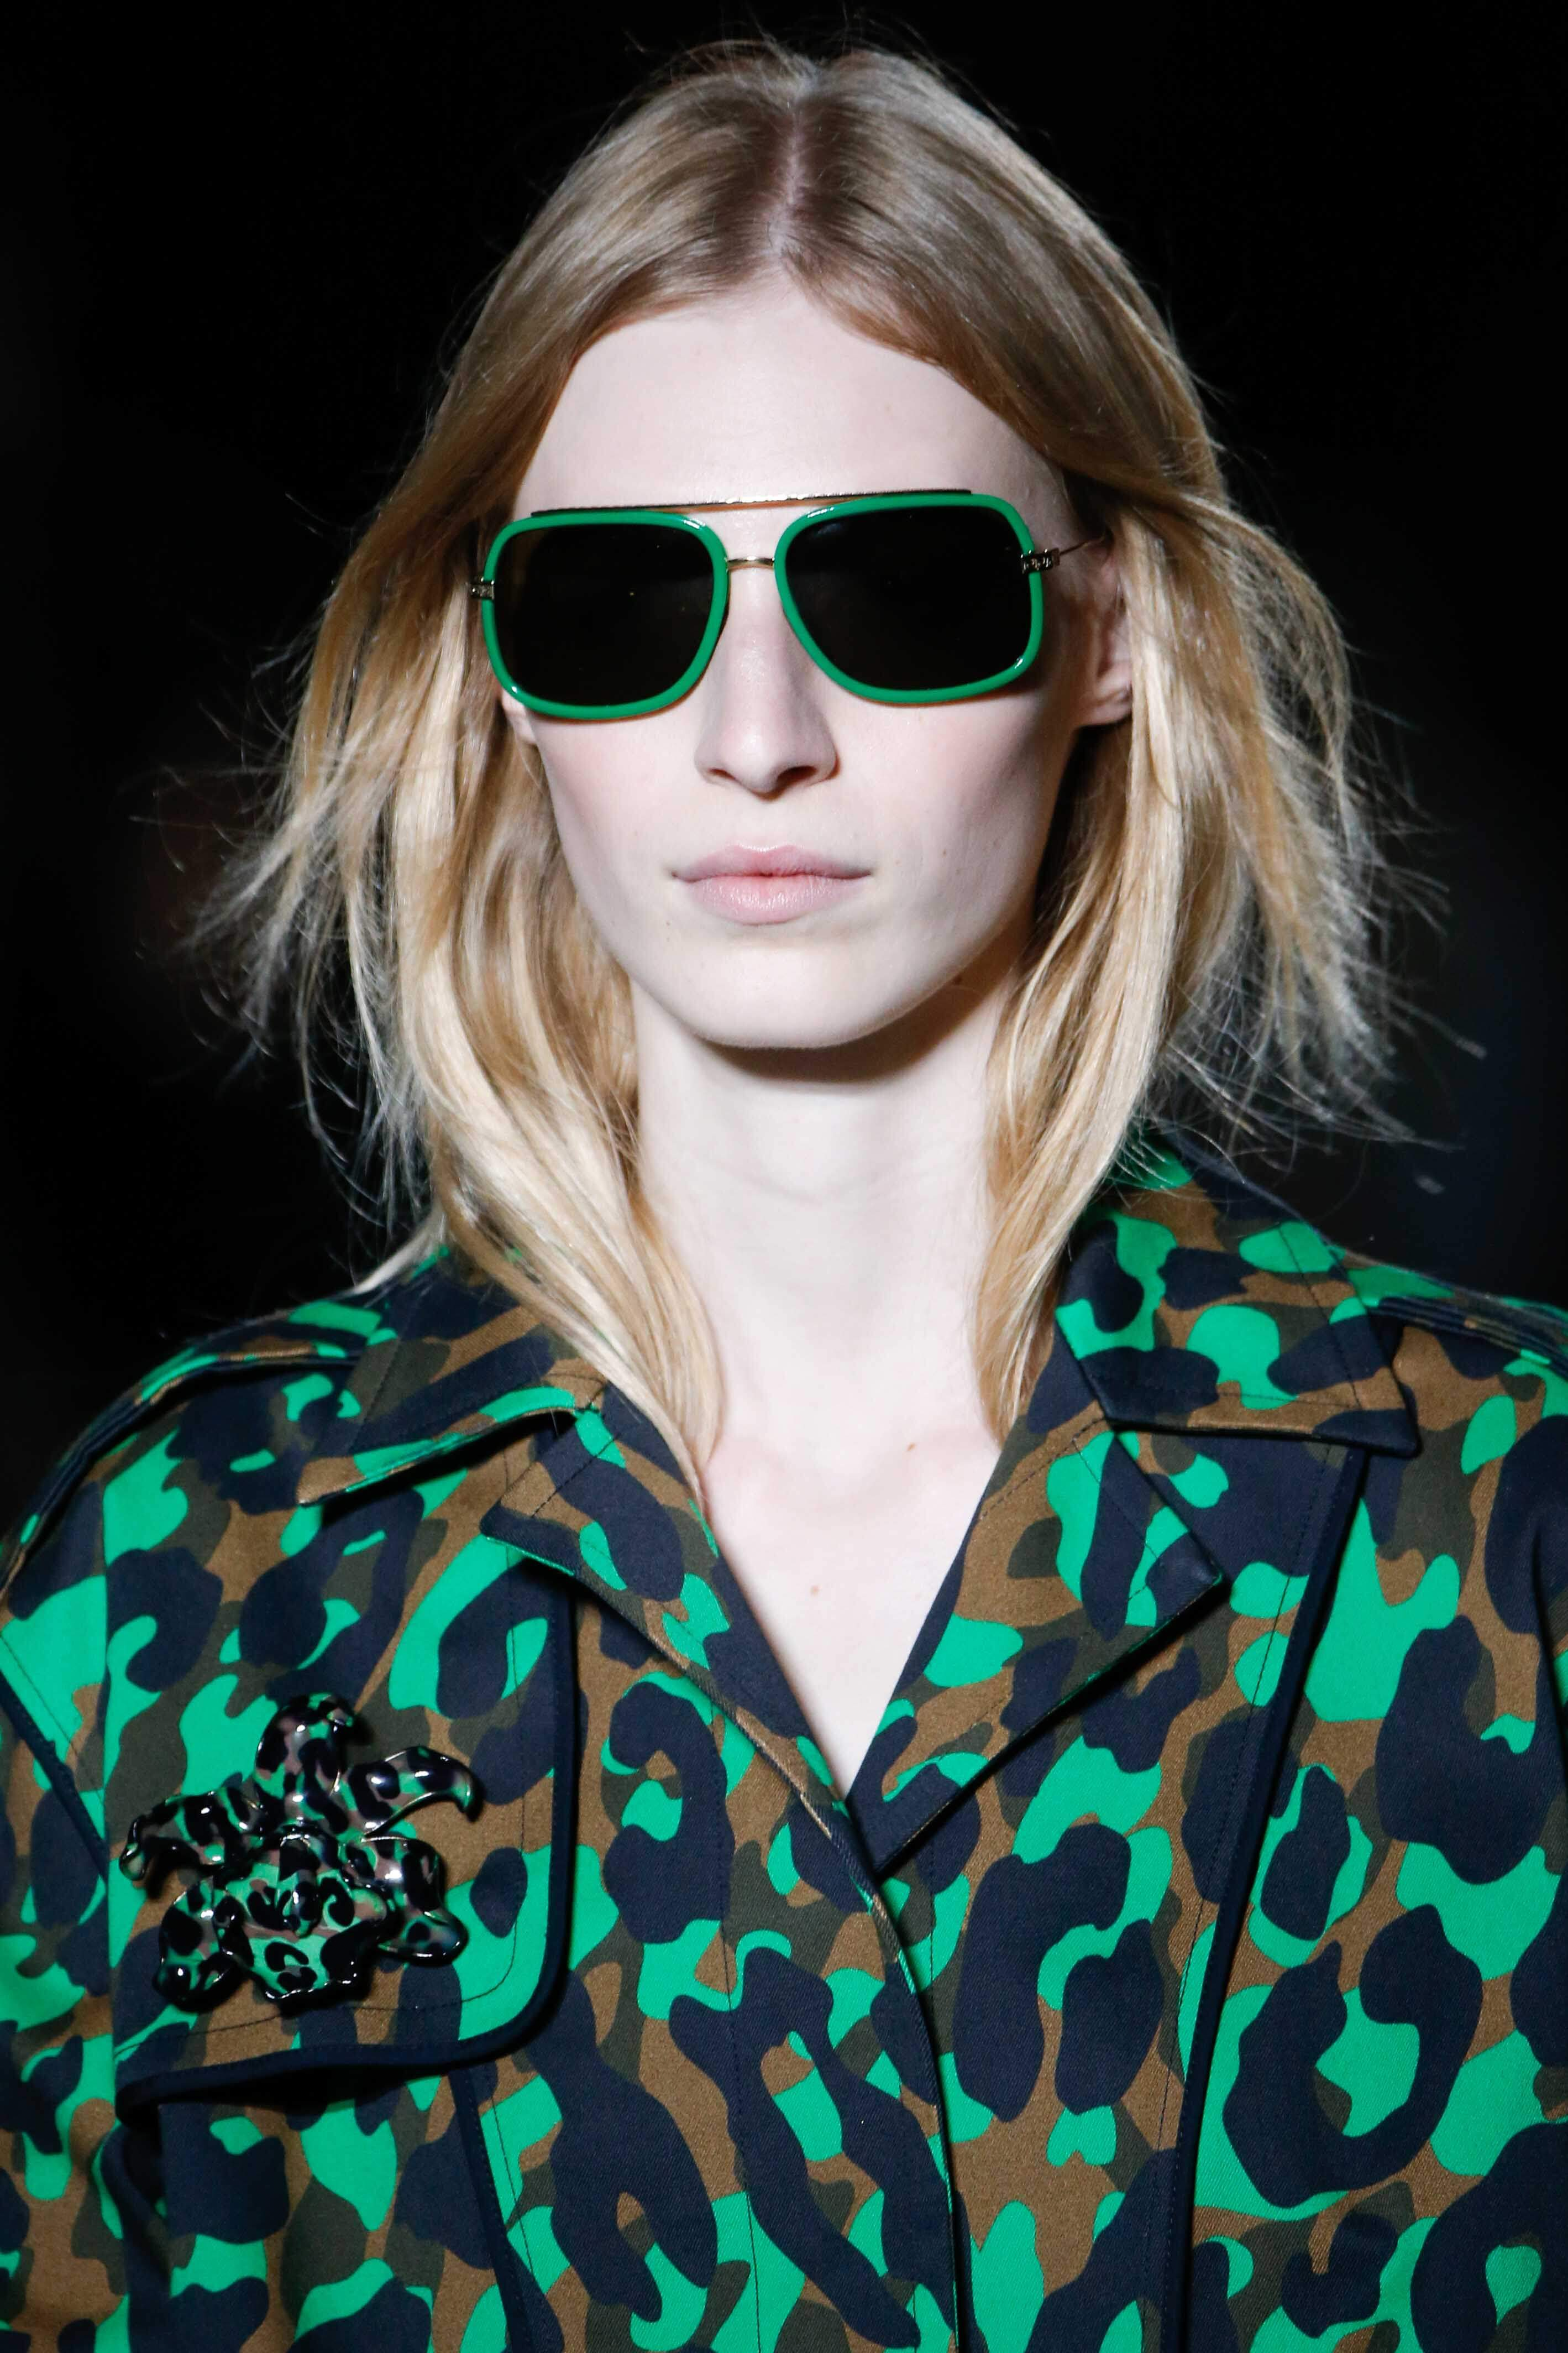 Blonde hair: Front facing view of a woman wearing green sunglasses with ash blonde hair colour.